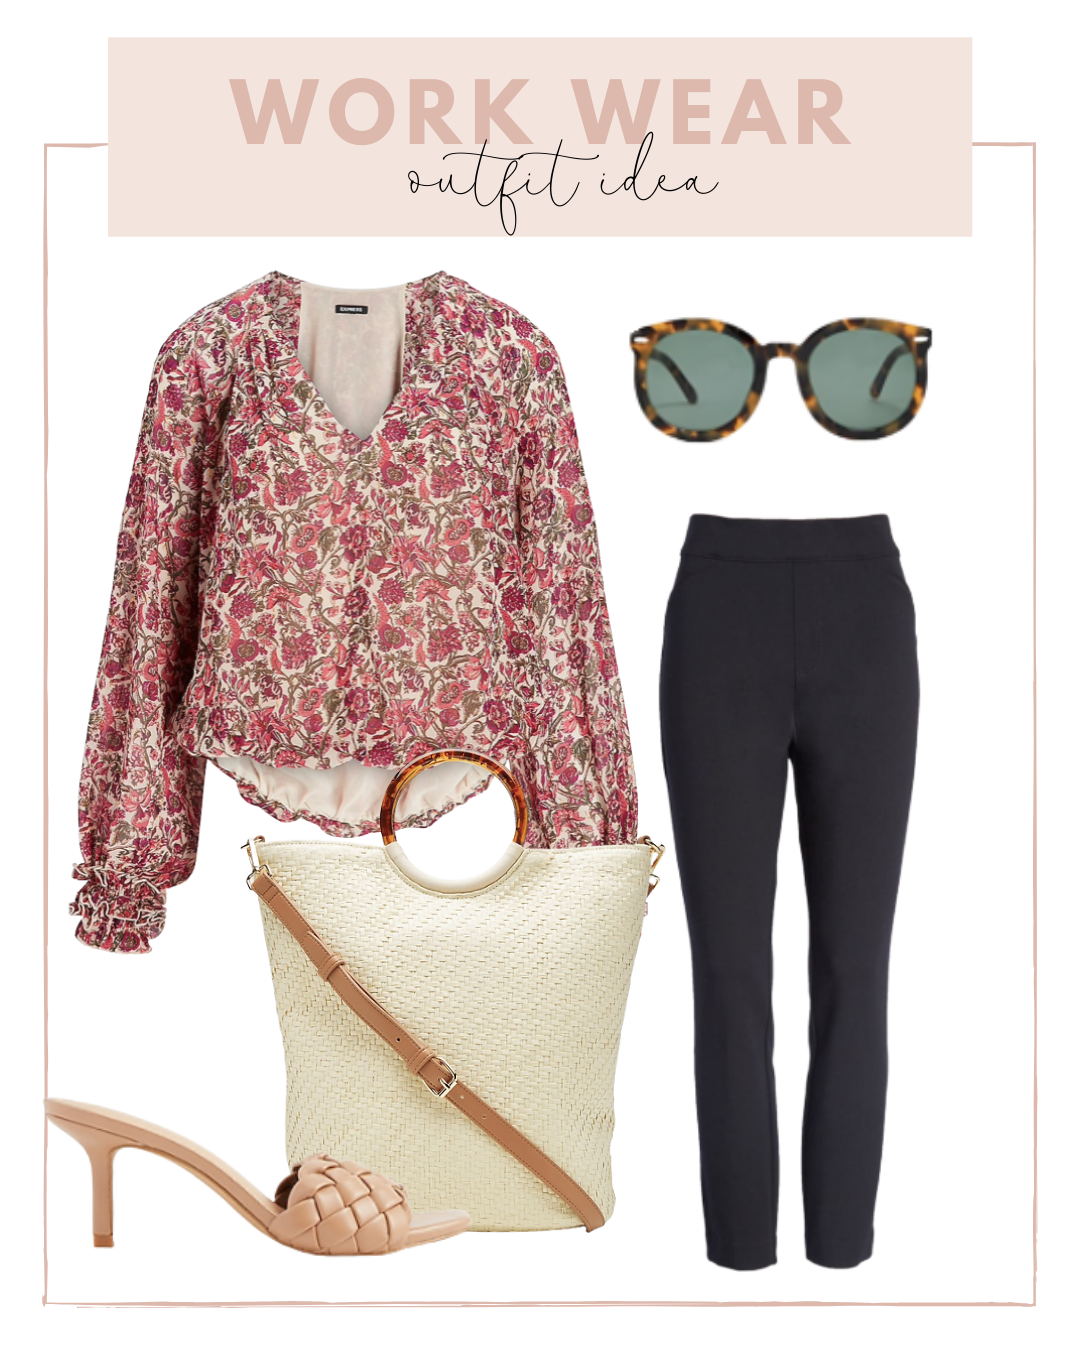 Work Wear Outfit with Black Ankle Pants